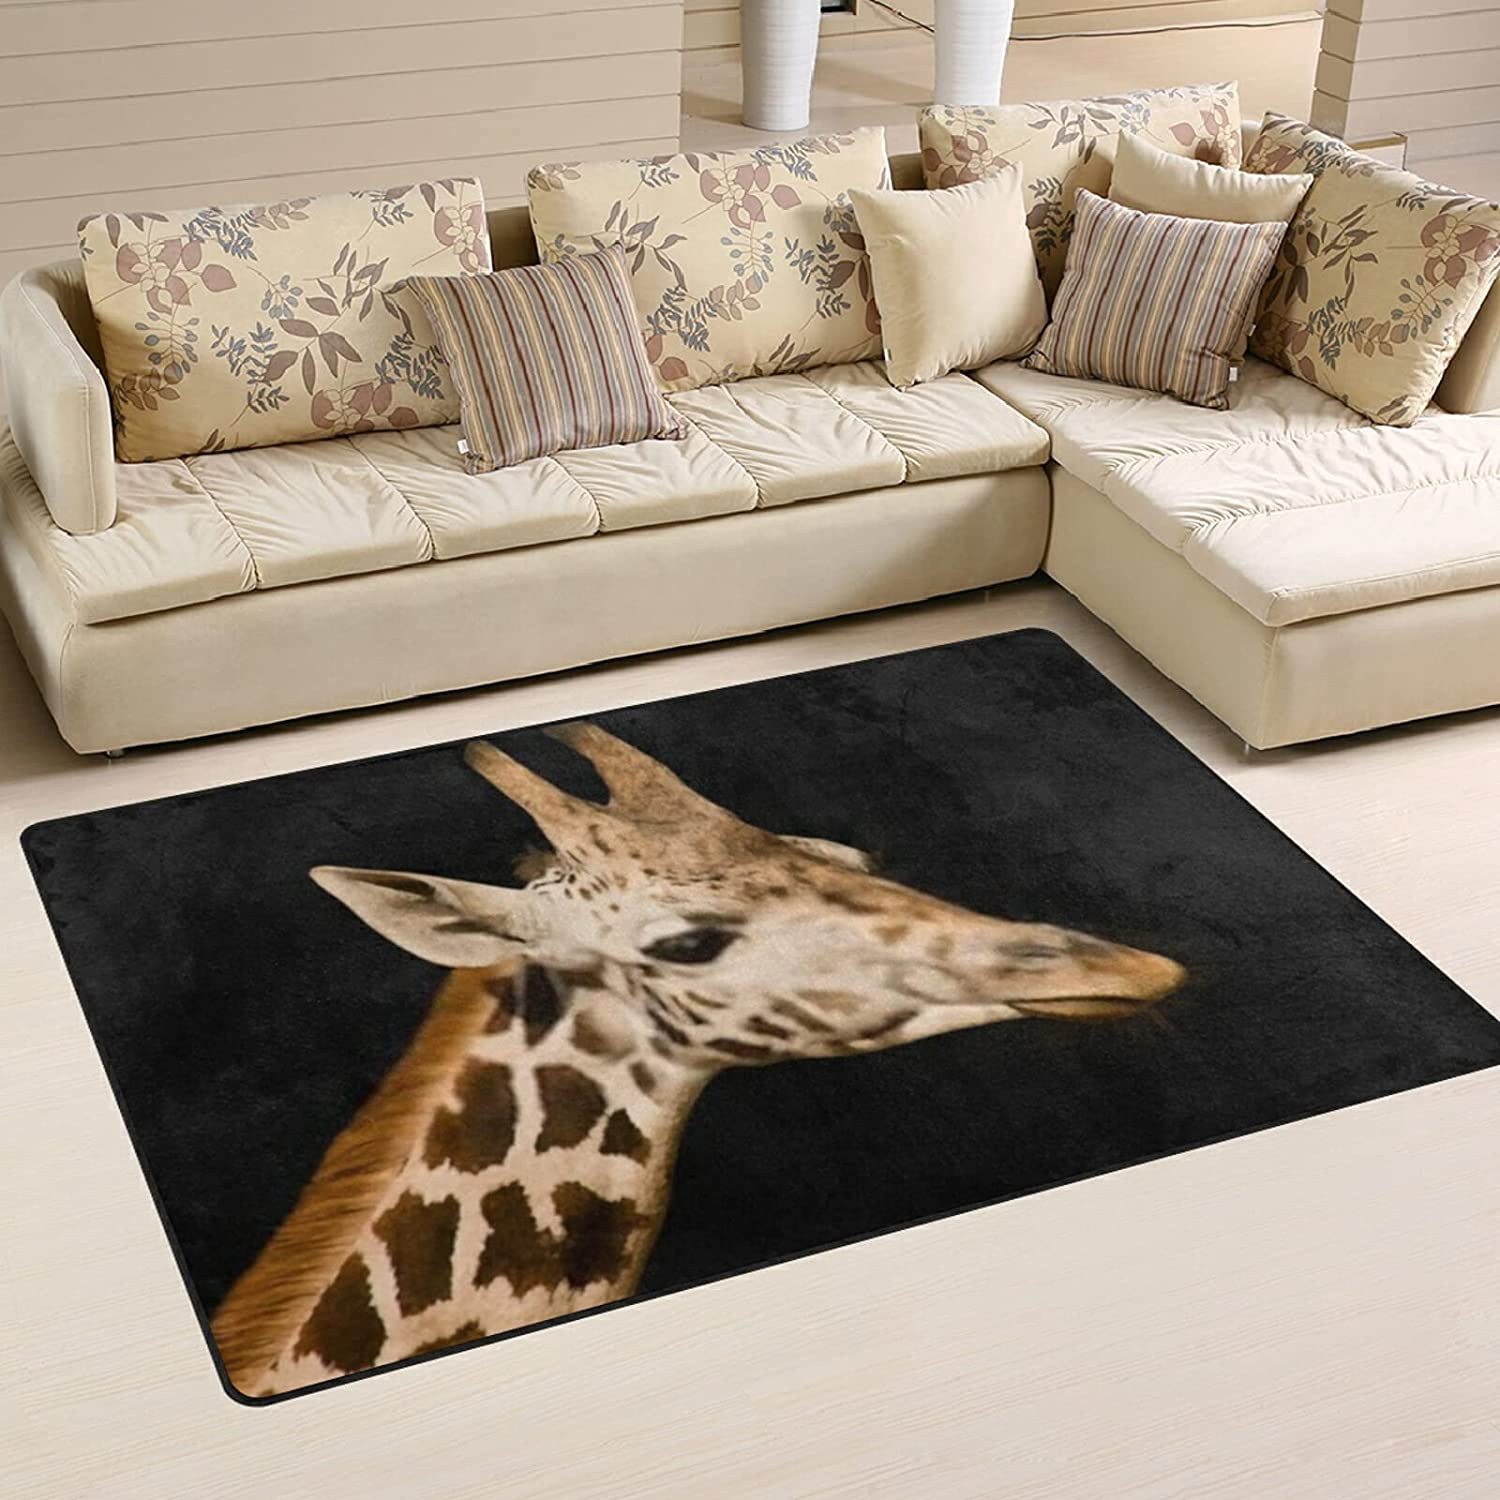 Funny Giraffe Large Soft Area Rugs Rug K Playmat for Mat Nursery Sale SALE% OFF Max 48% OFF